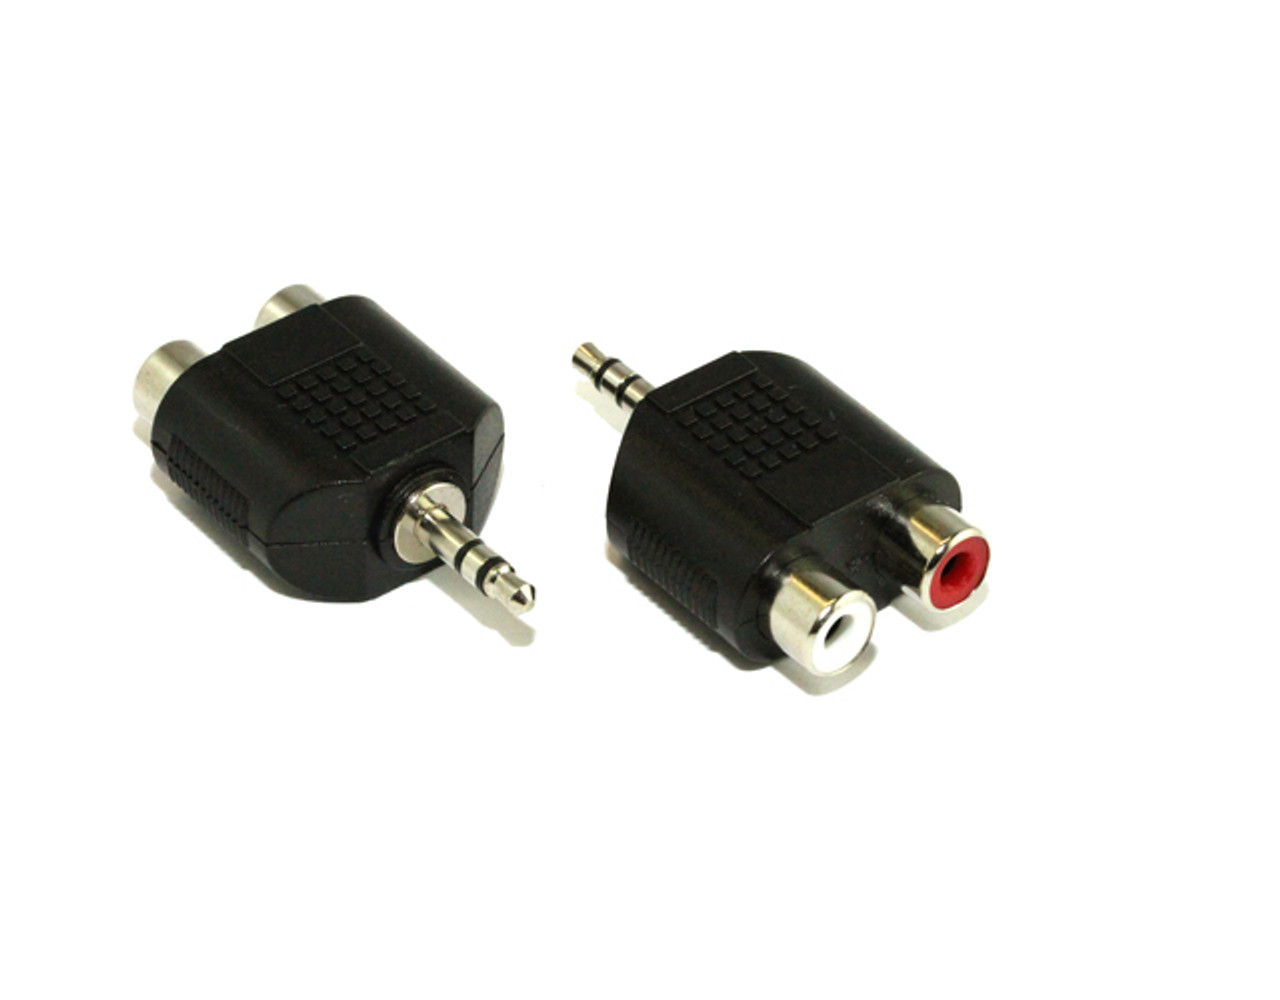 Product image for 3.5MM Plug To 2 RCA F Adaptor | CX Computer Superstore